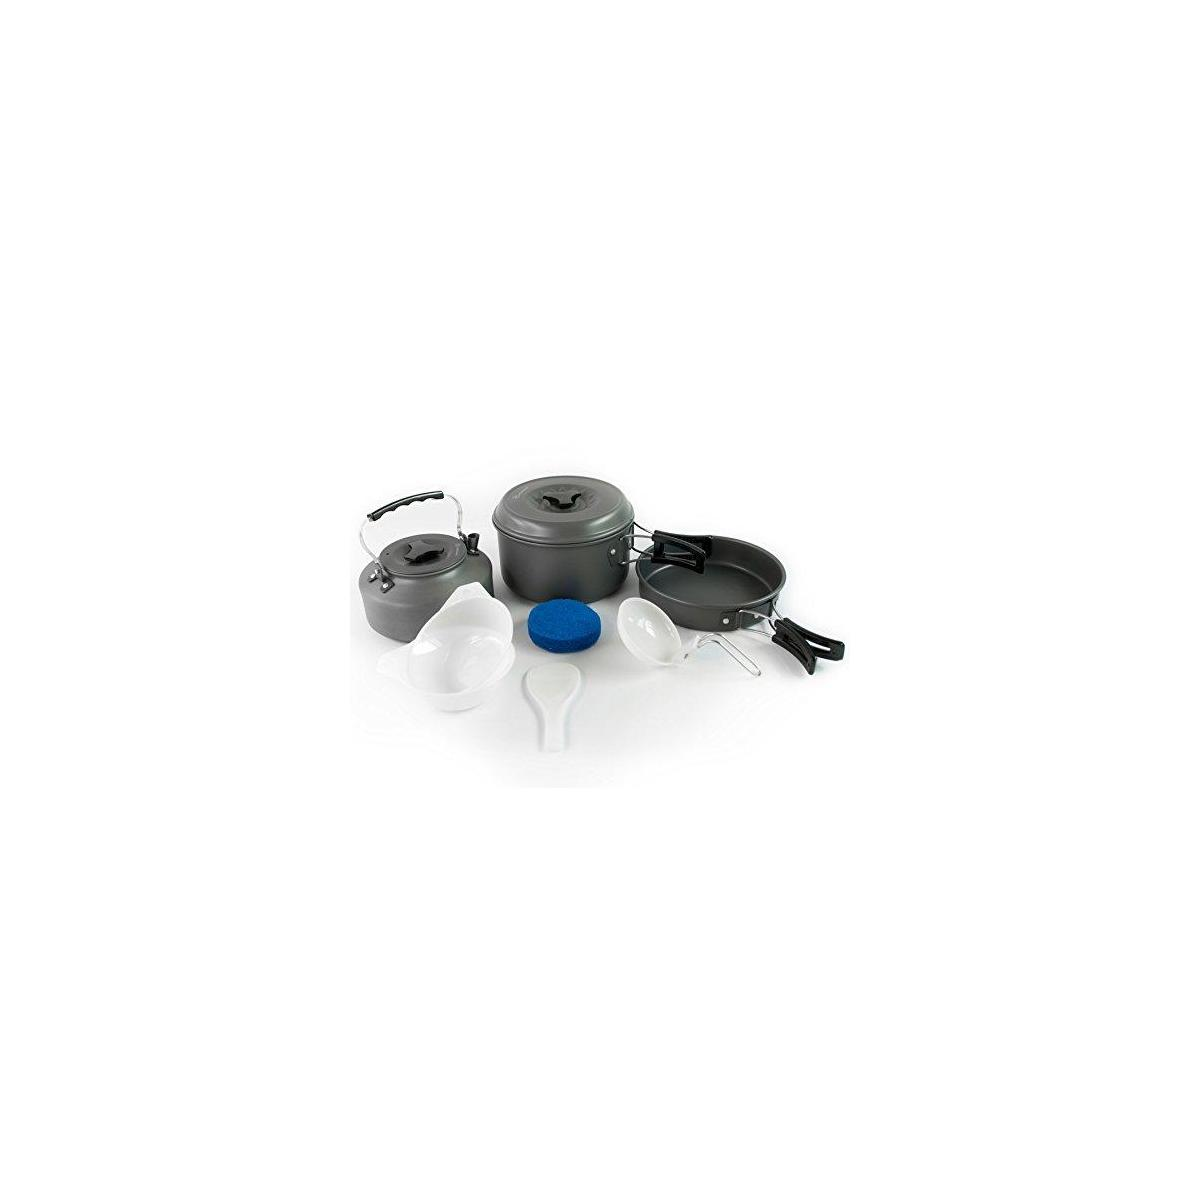 Winterial Camping and Backpacking Cookware